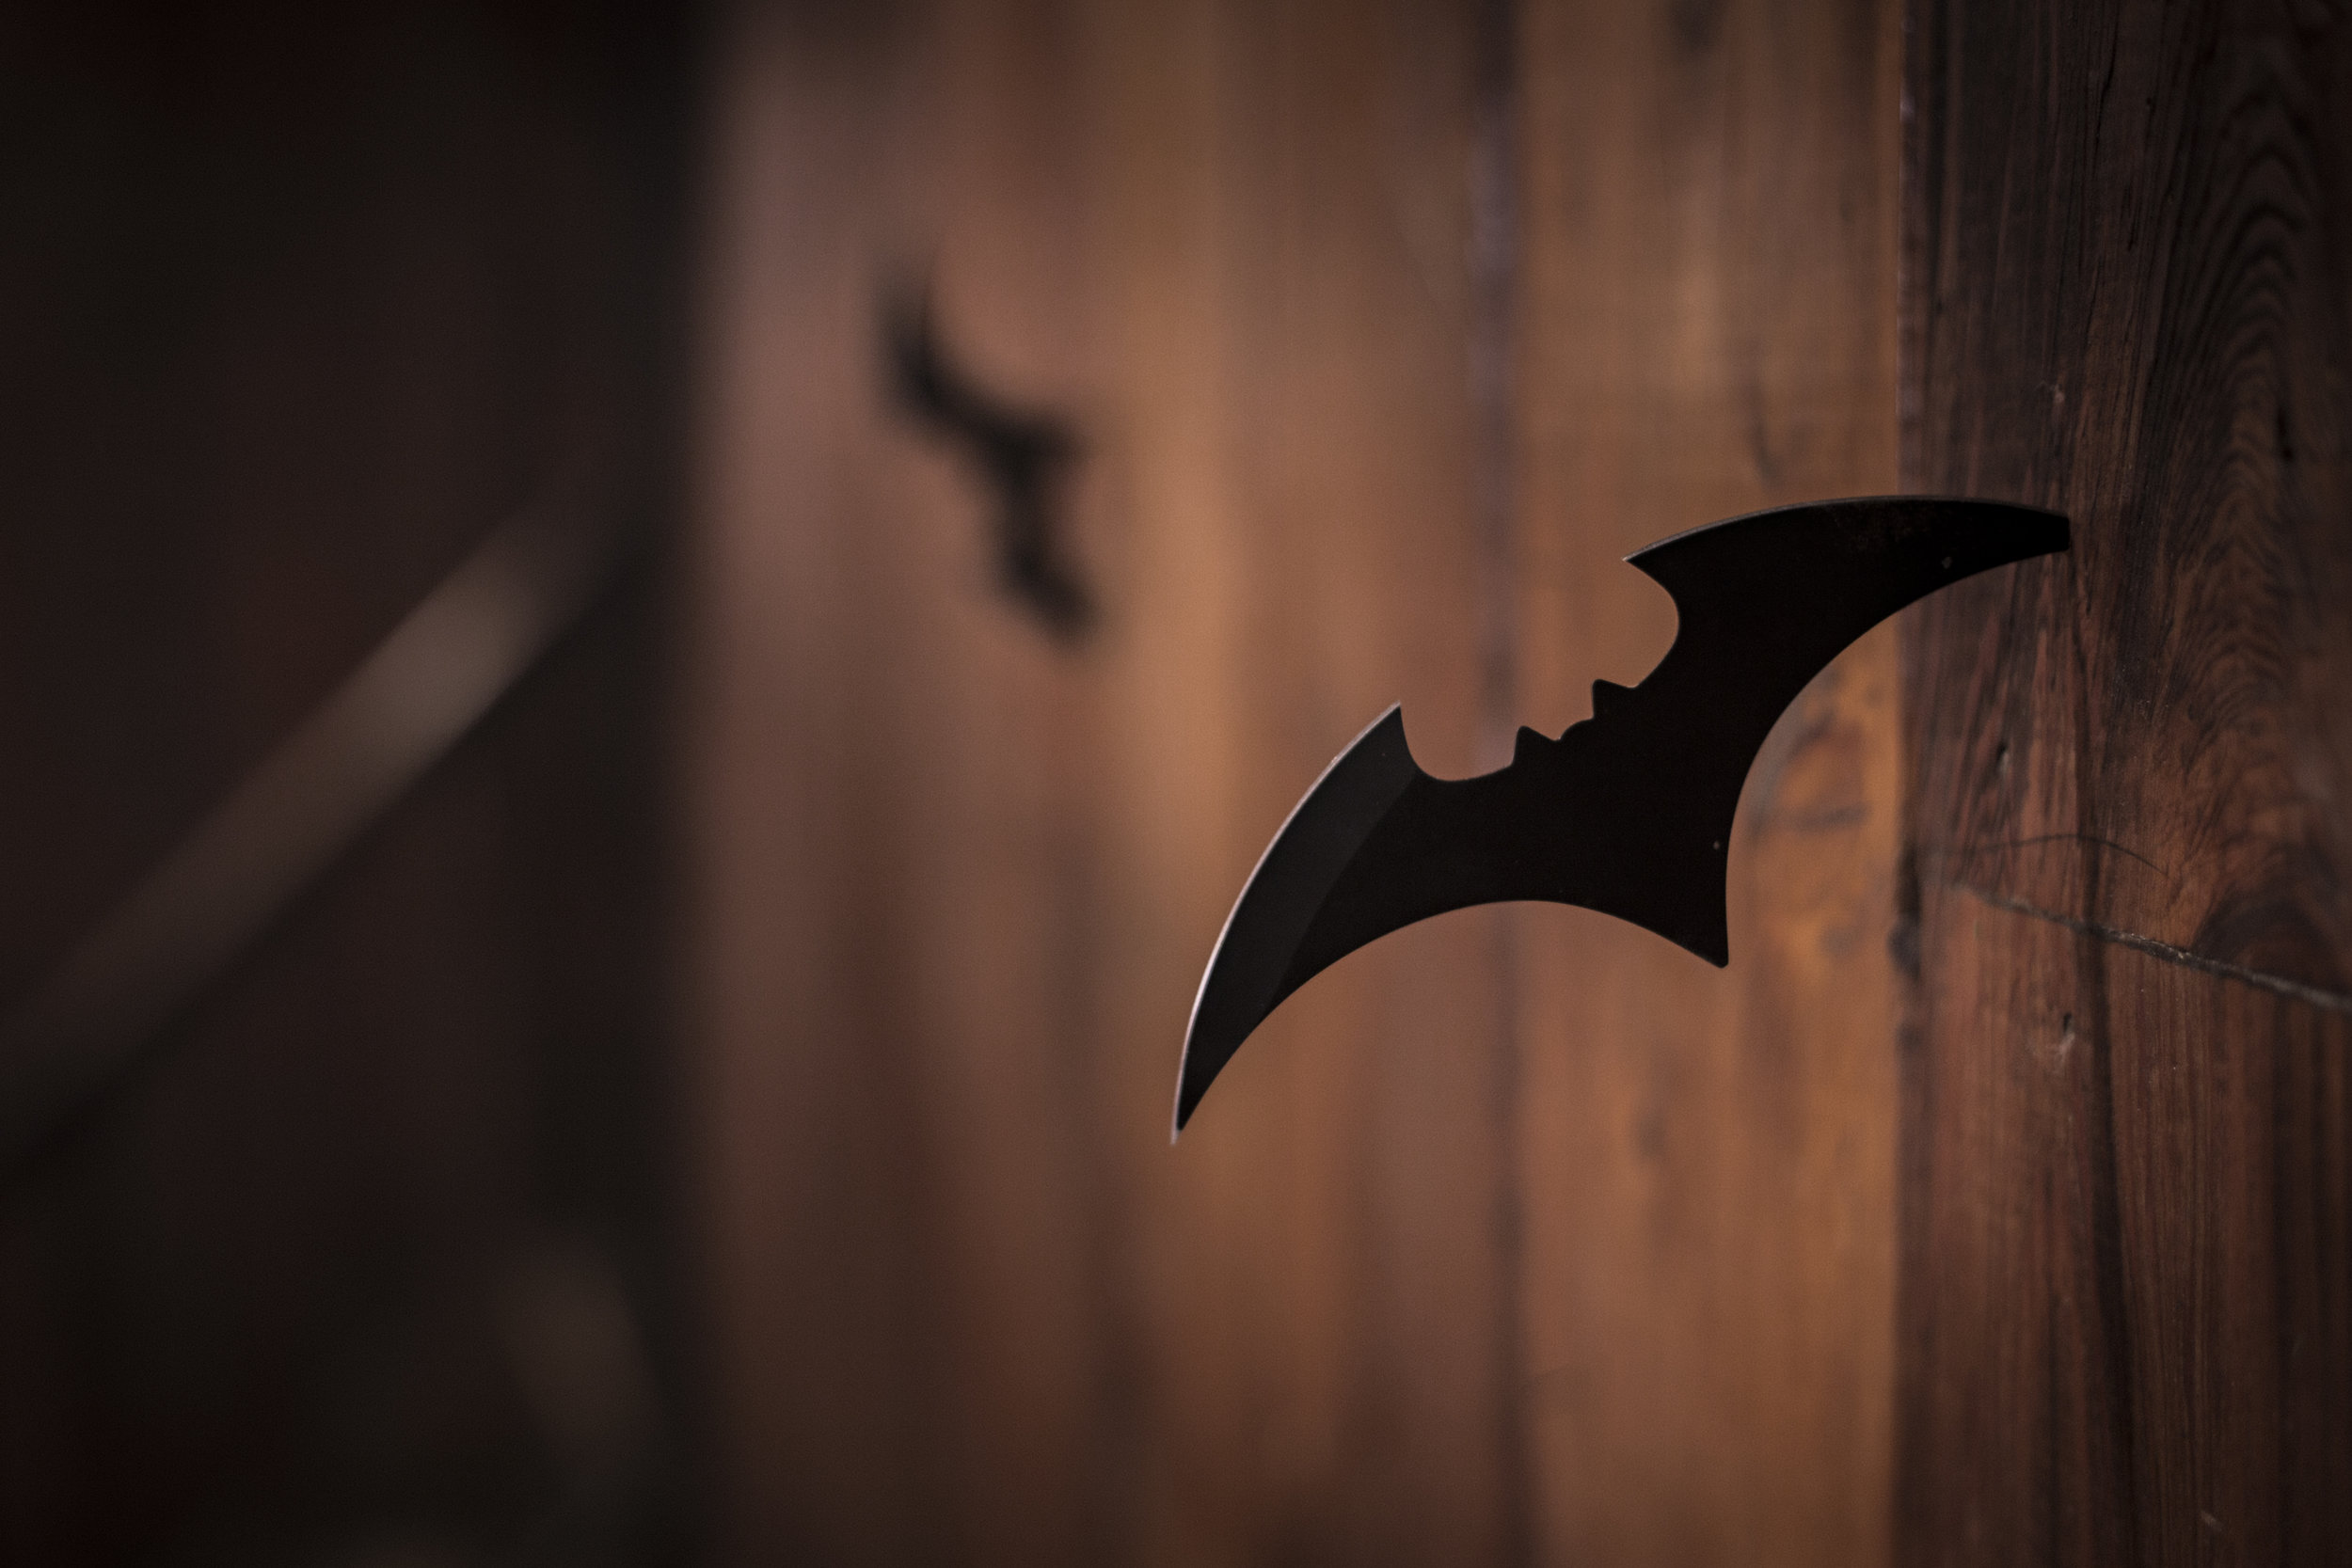 Was a cutout of a bat the closest we were ever going to get?